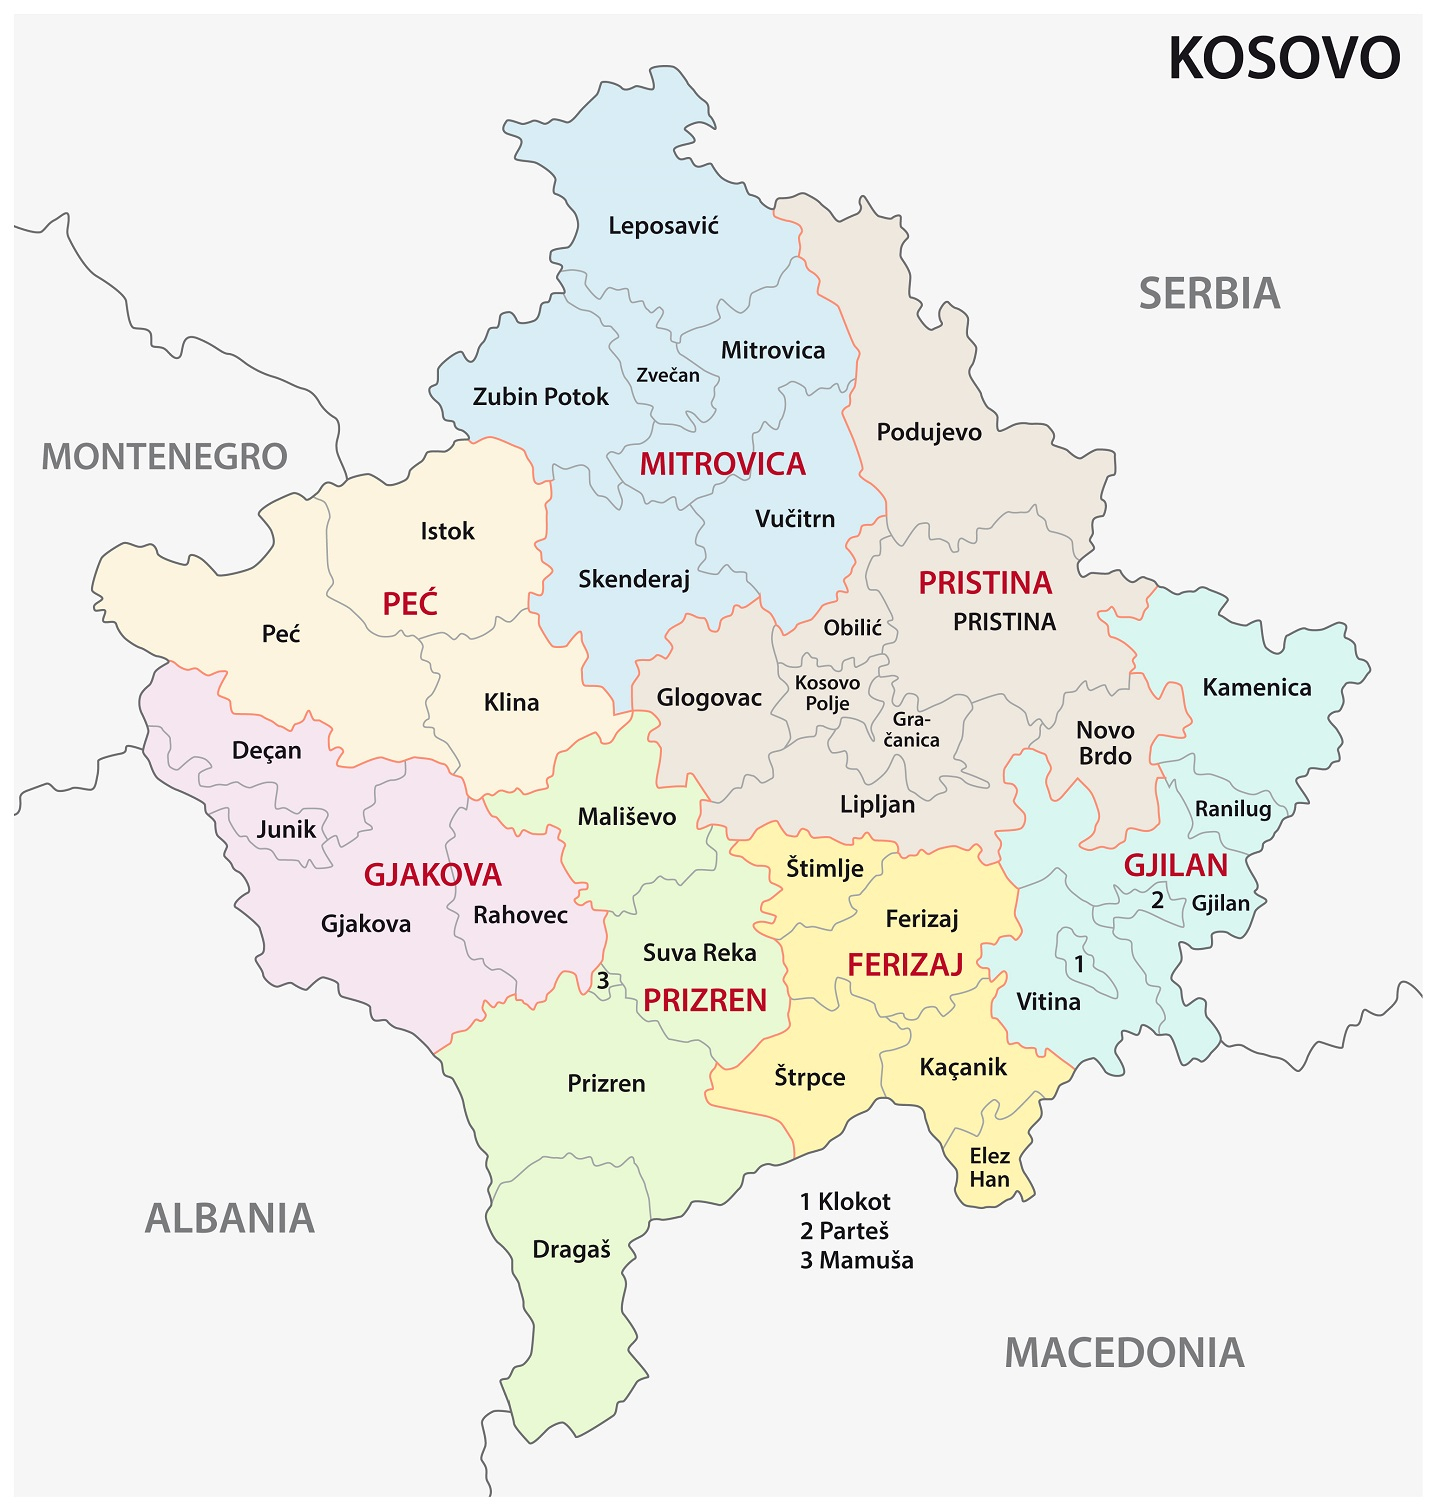 kosovo administrative and political map